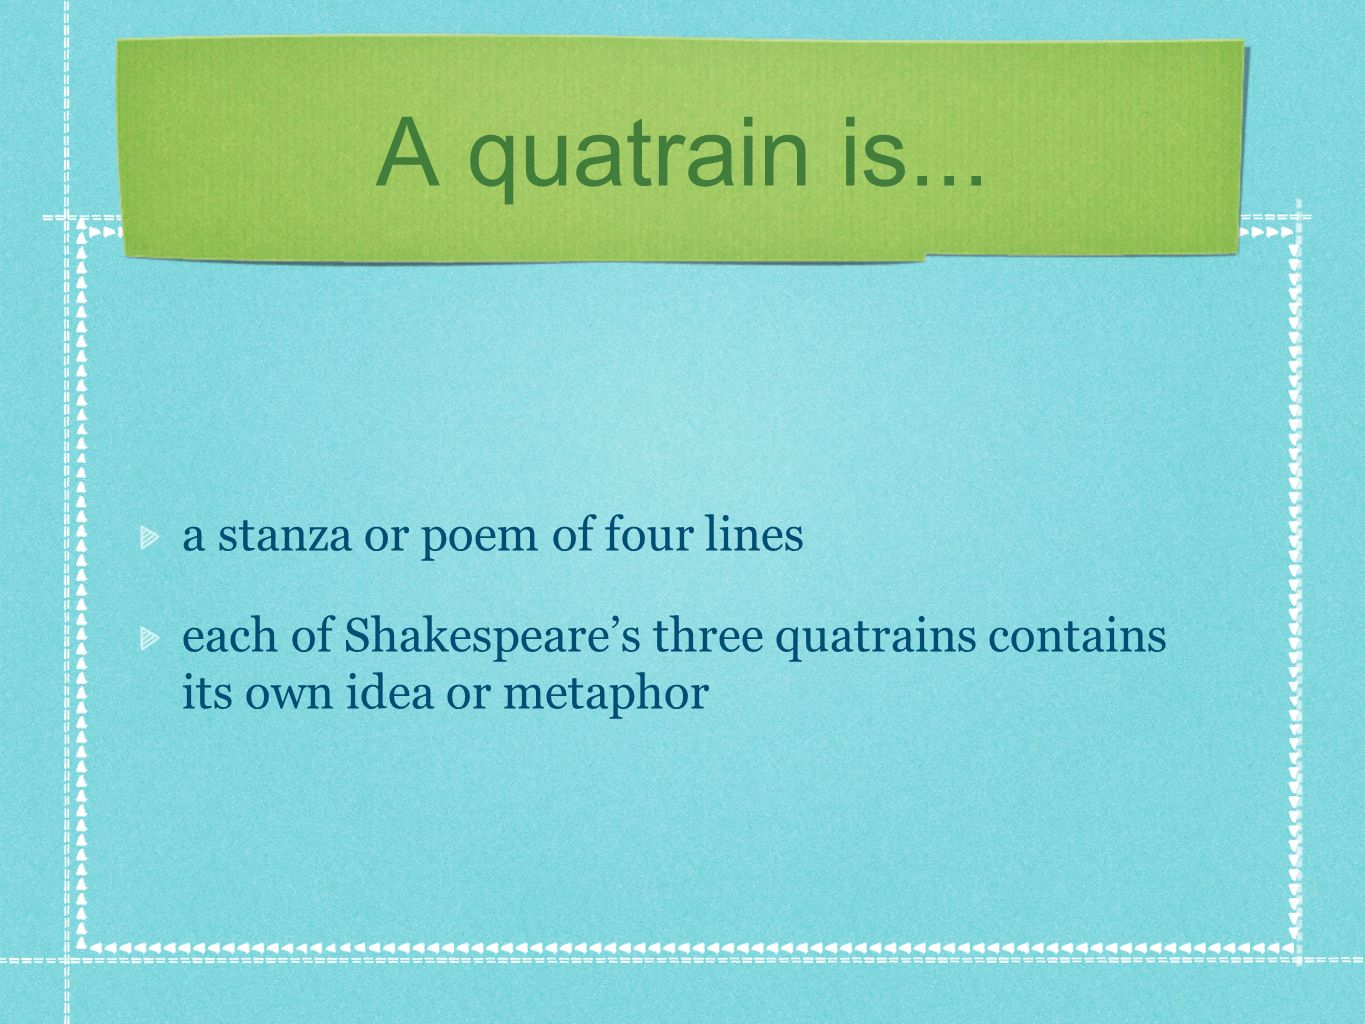 A quatrain is... a stanza or poem of four lines